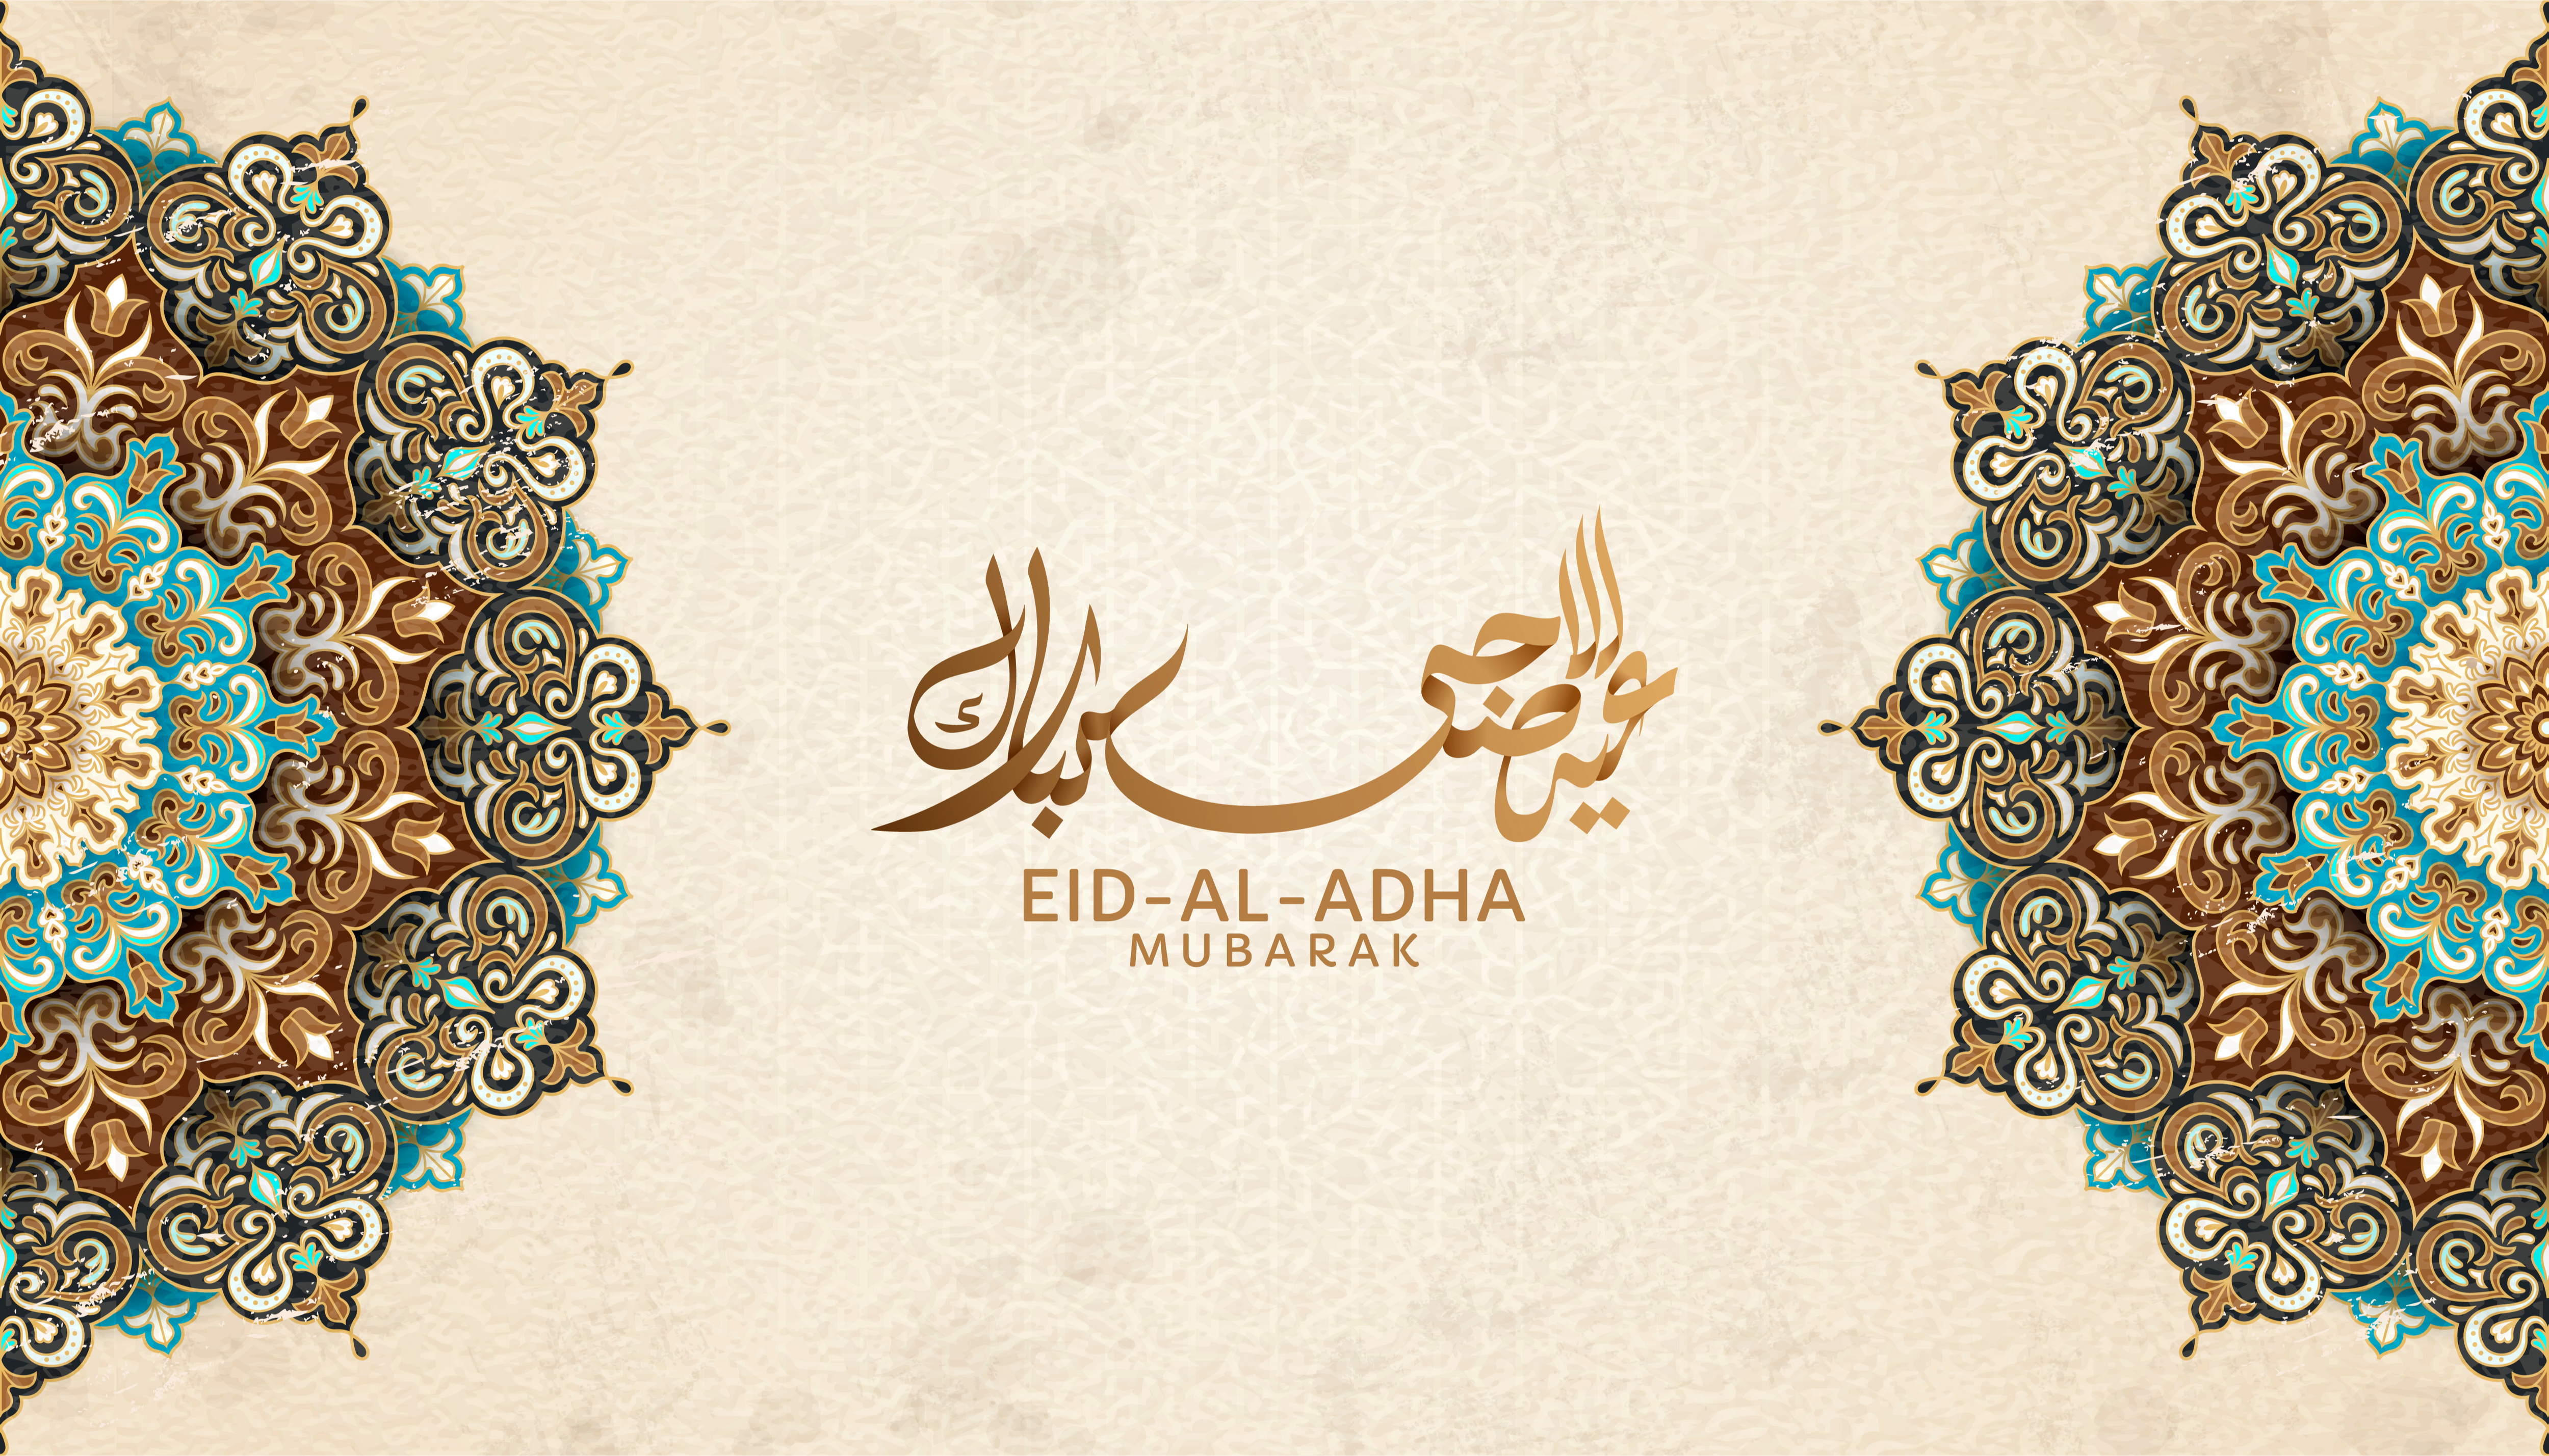 Want to know what this Eid al-Adha thing is that all your Muslim friends and colleagues are talking about? Then look no further than today's article.